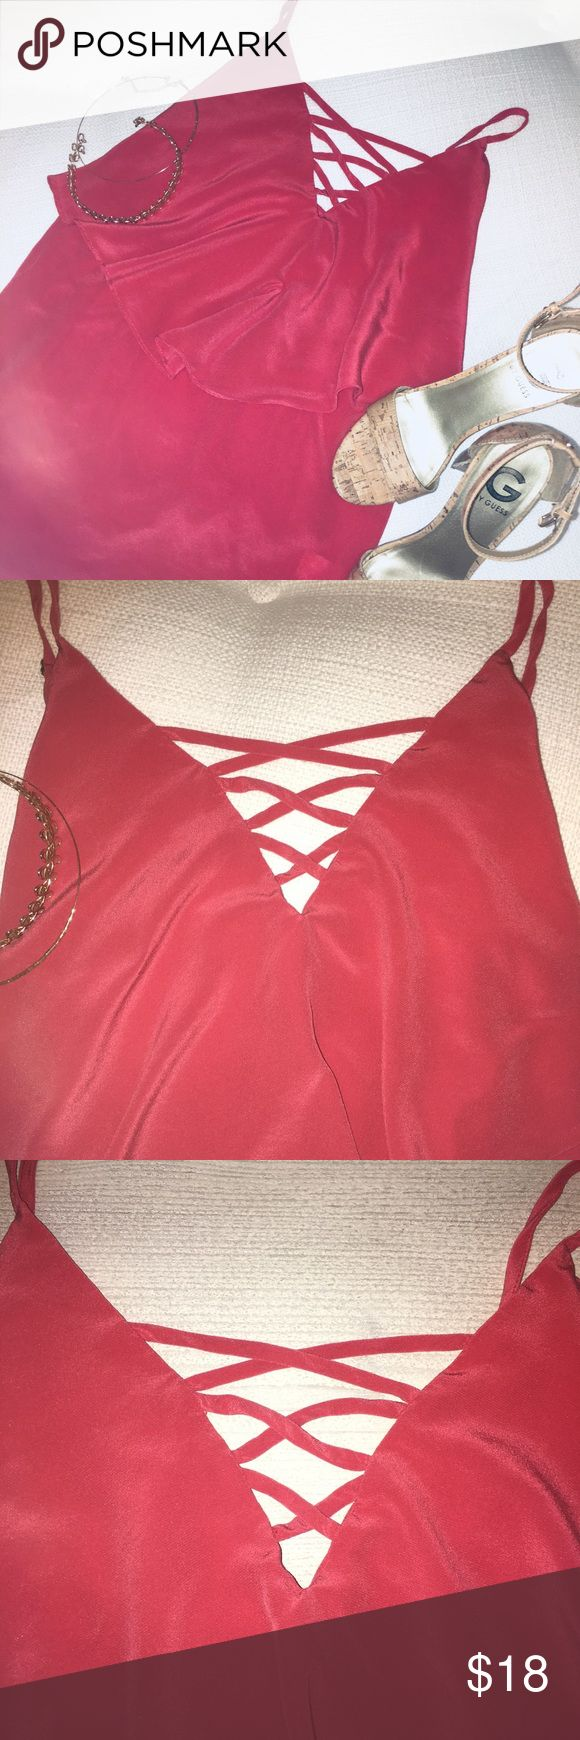 Bailey 44 top! Cute coral top! Bailey 44 Size: M  Color: coral  Spaghetti straps (adjustable)  Top has been worn a few times  Great condition! ❣️ Please note: top is only for sale ty! Bailey 44 Tops Camisoles